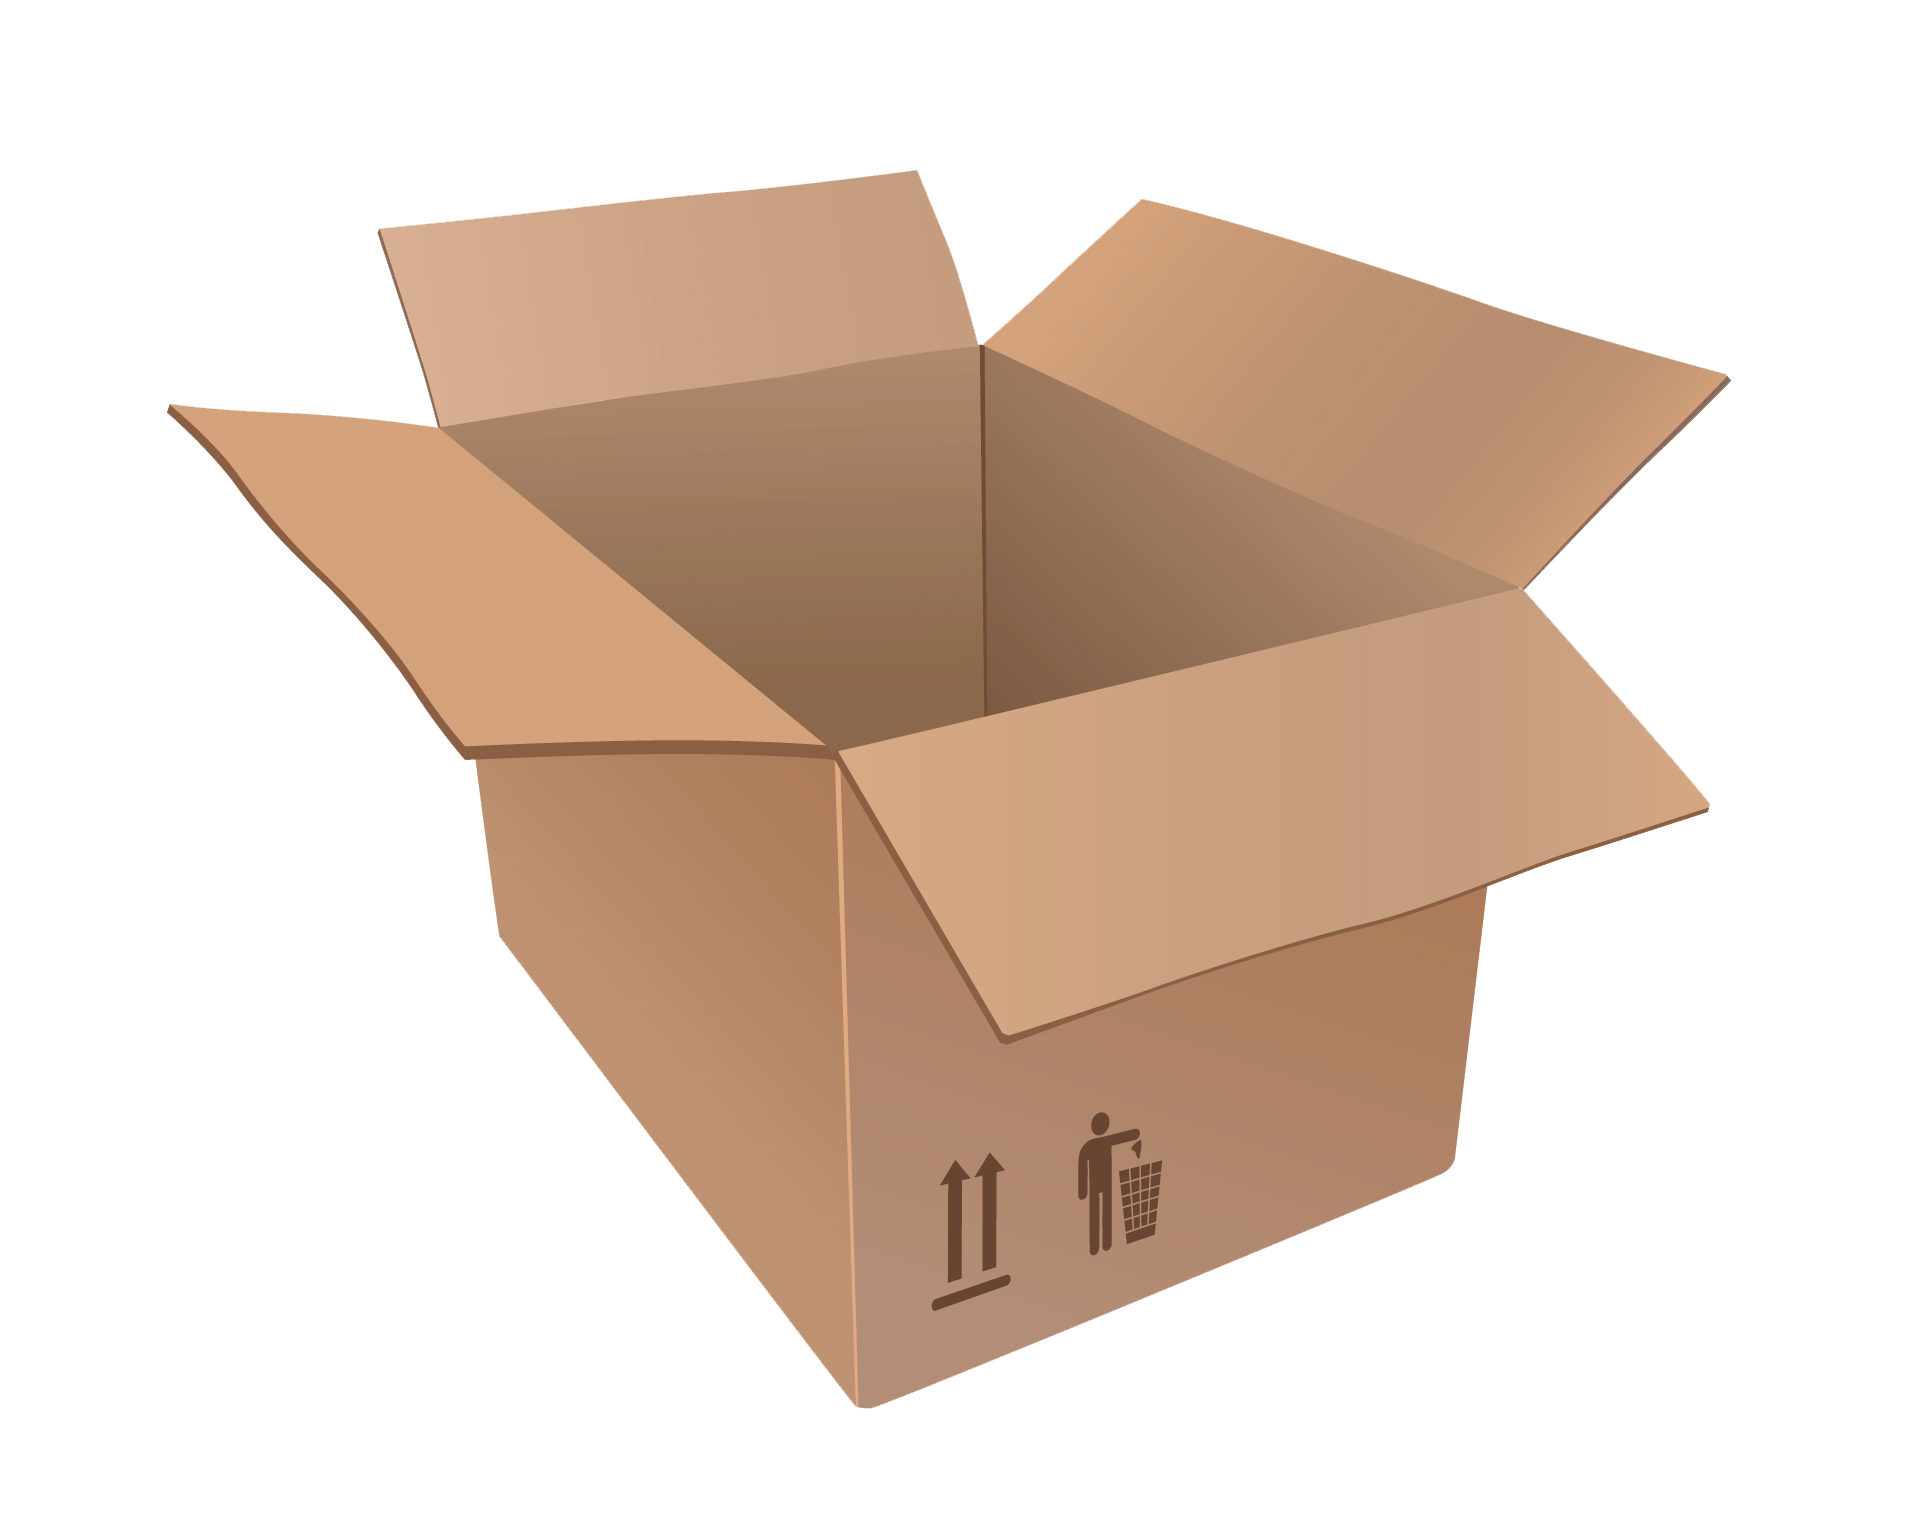 Cardboard Open Box PNG Transparent Image Free.